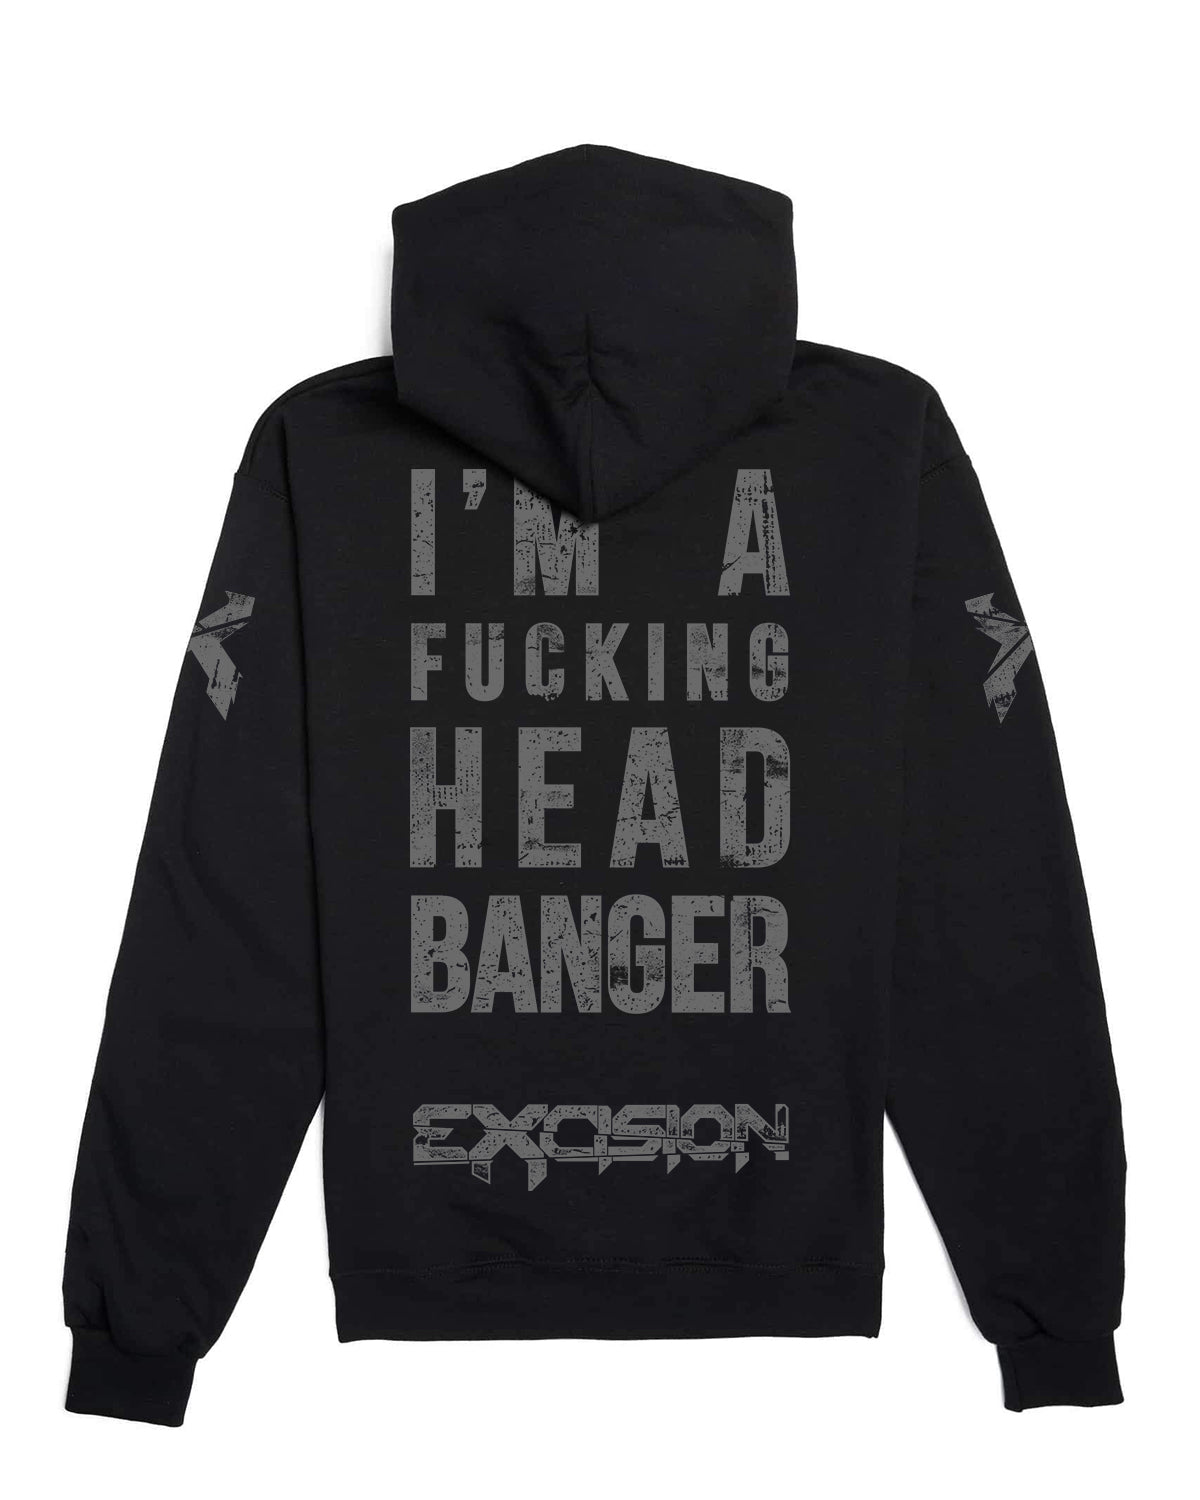 Apex Tour 2019 Limited Edition Reflective Headbanger Hoodie (PreOrder!: ships 02/15)